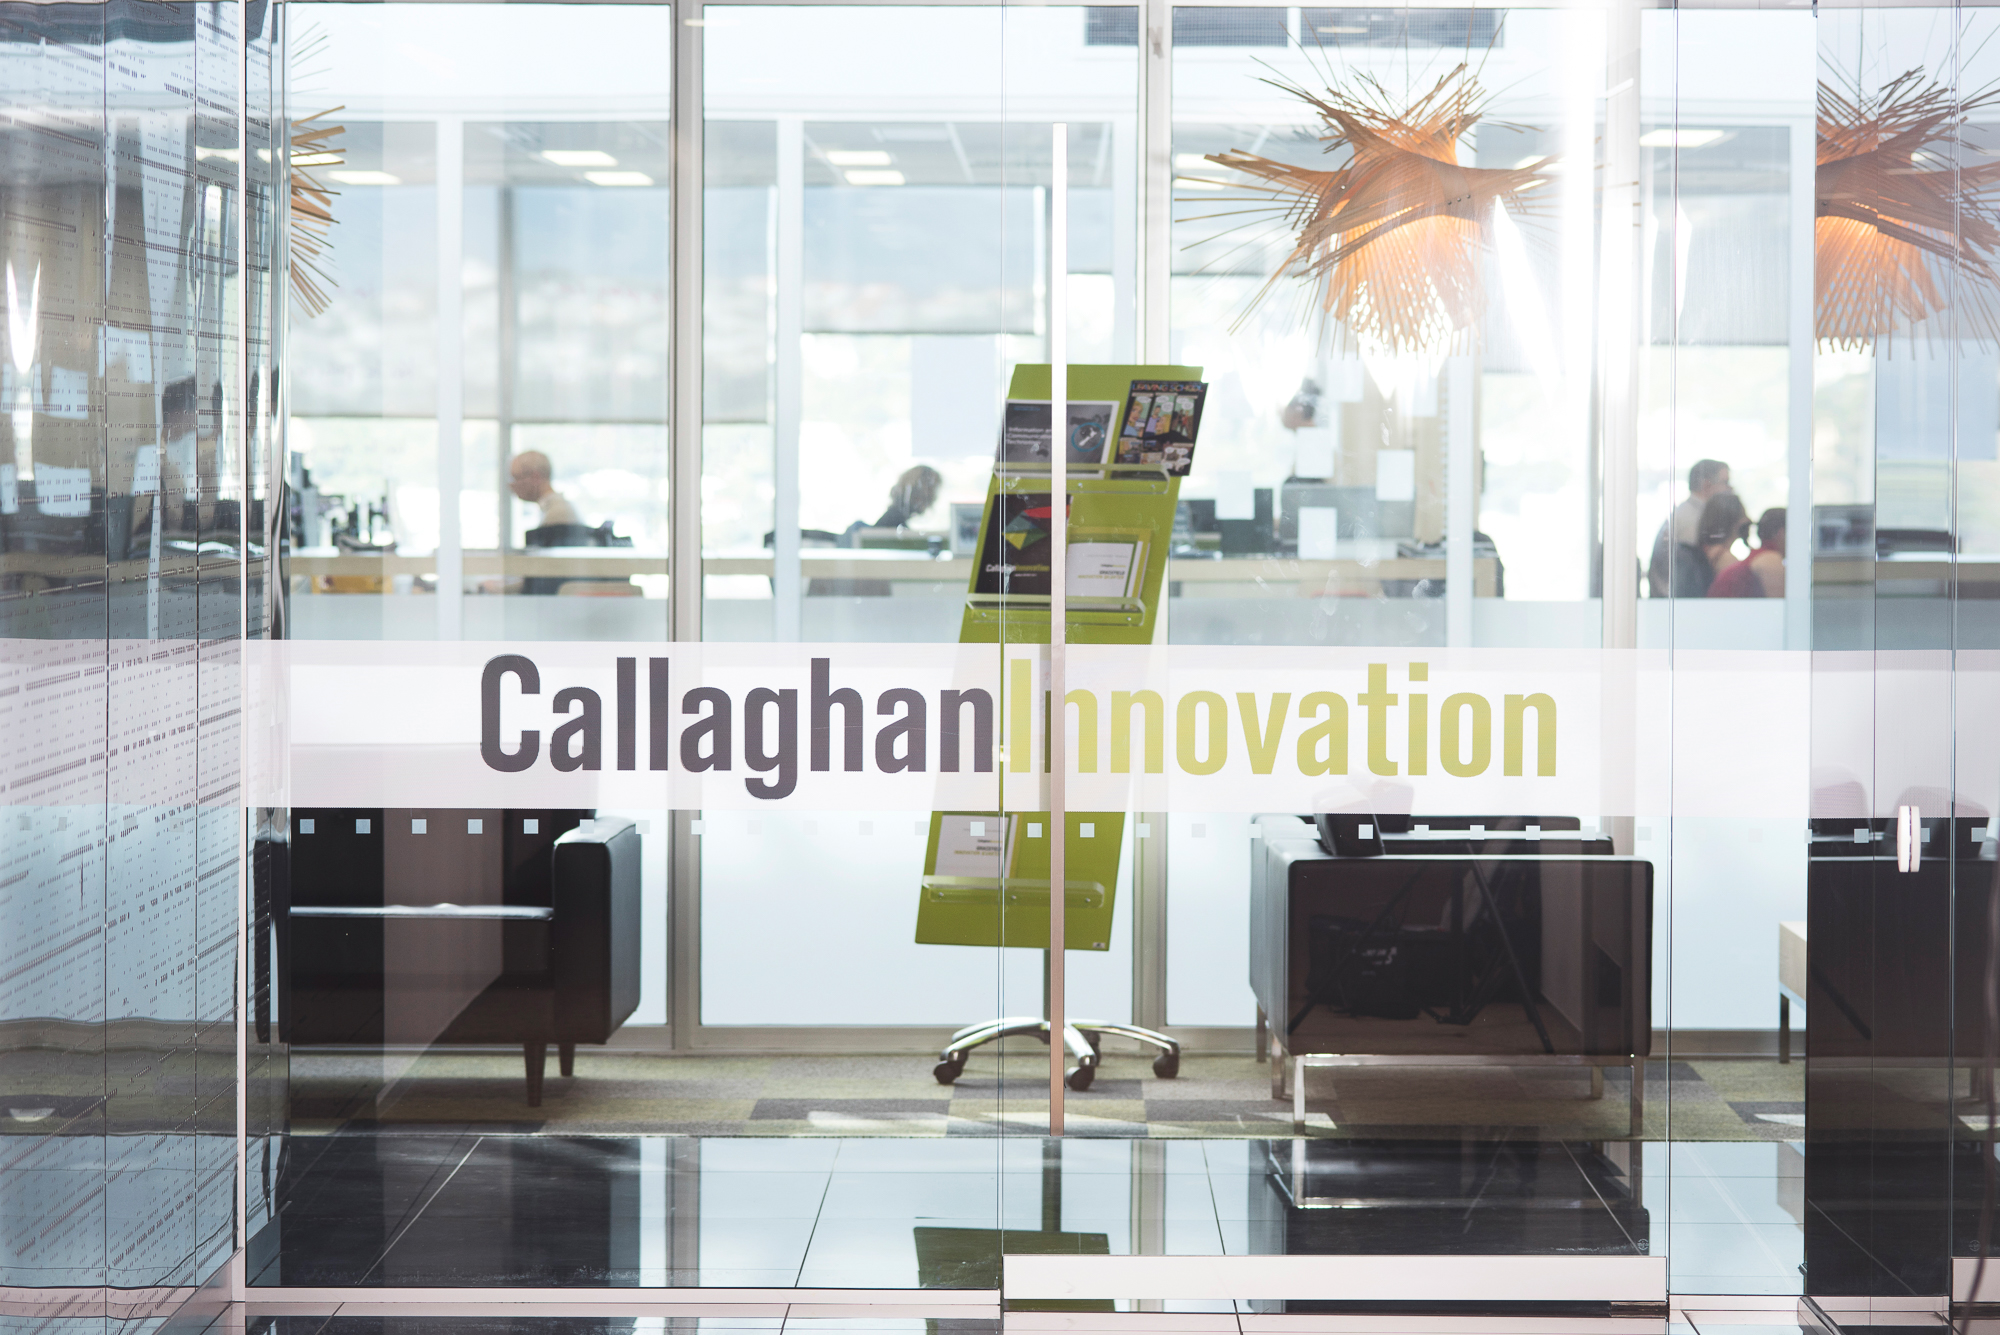 PowerON Acknowledges R&D Grant from Callaghan Innovation (New Zealand)